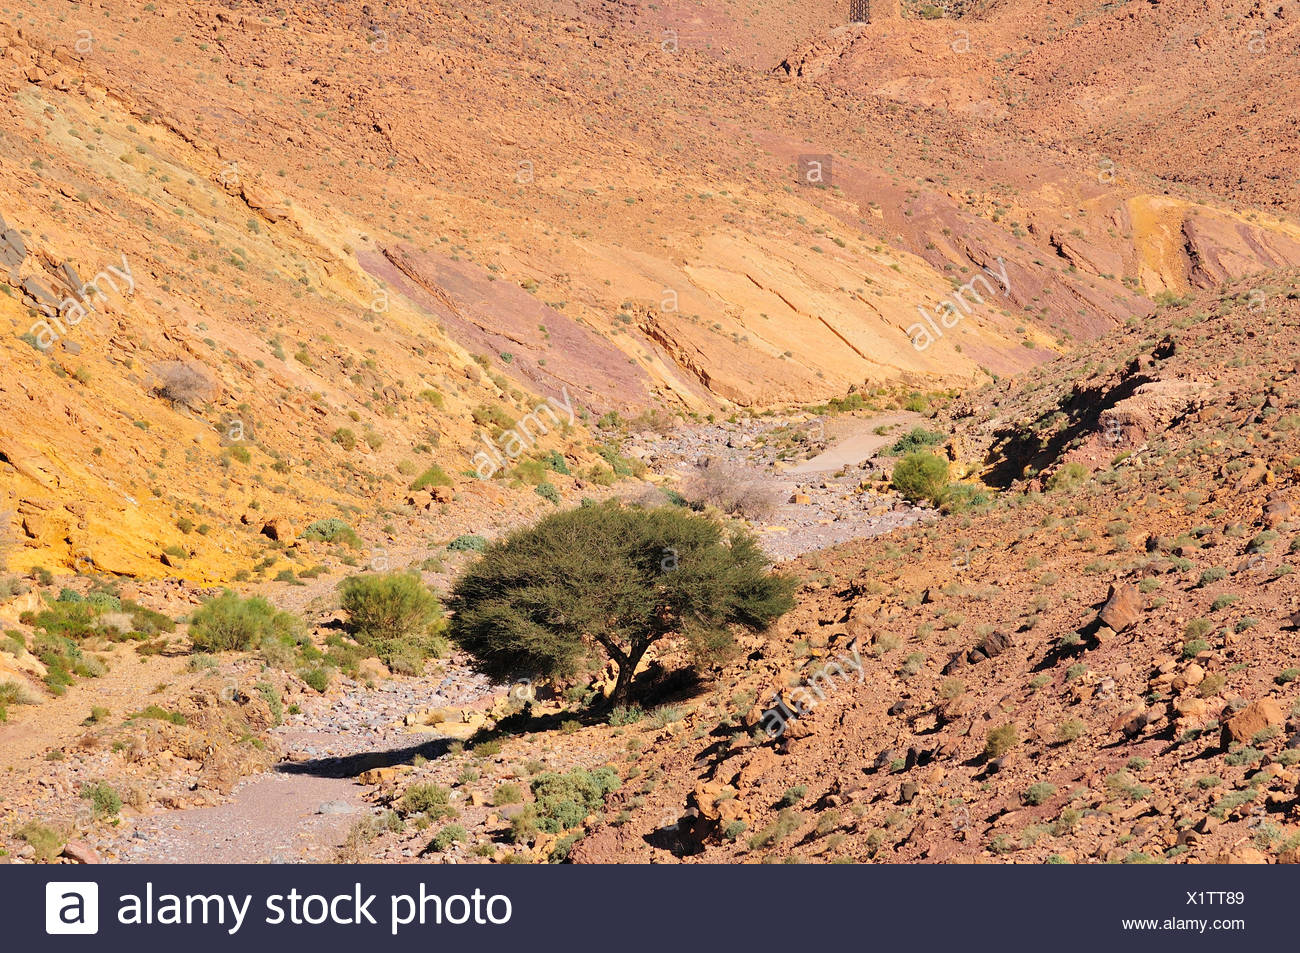 Typical landscape with a dry river bed, Oued, Anti-Atlas, Souss-Massa-Draâ region, Morocco Stock Photo